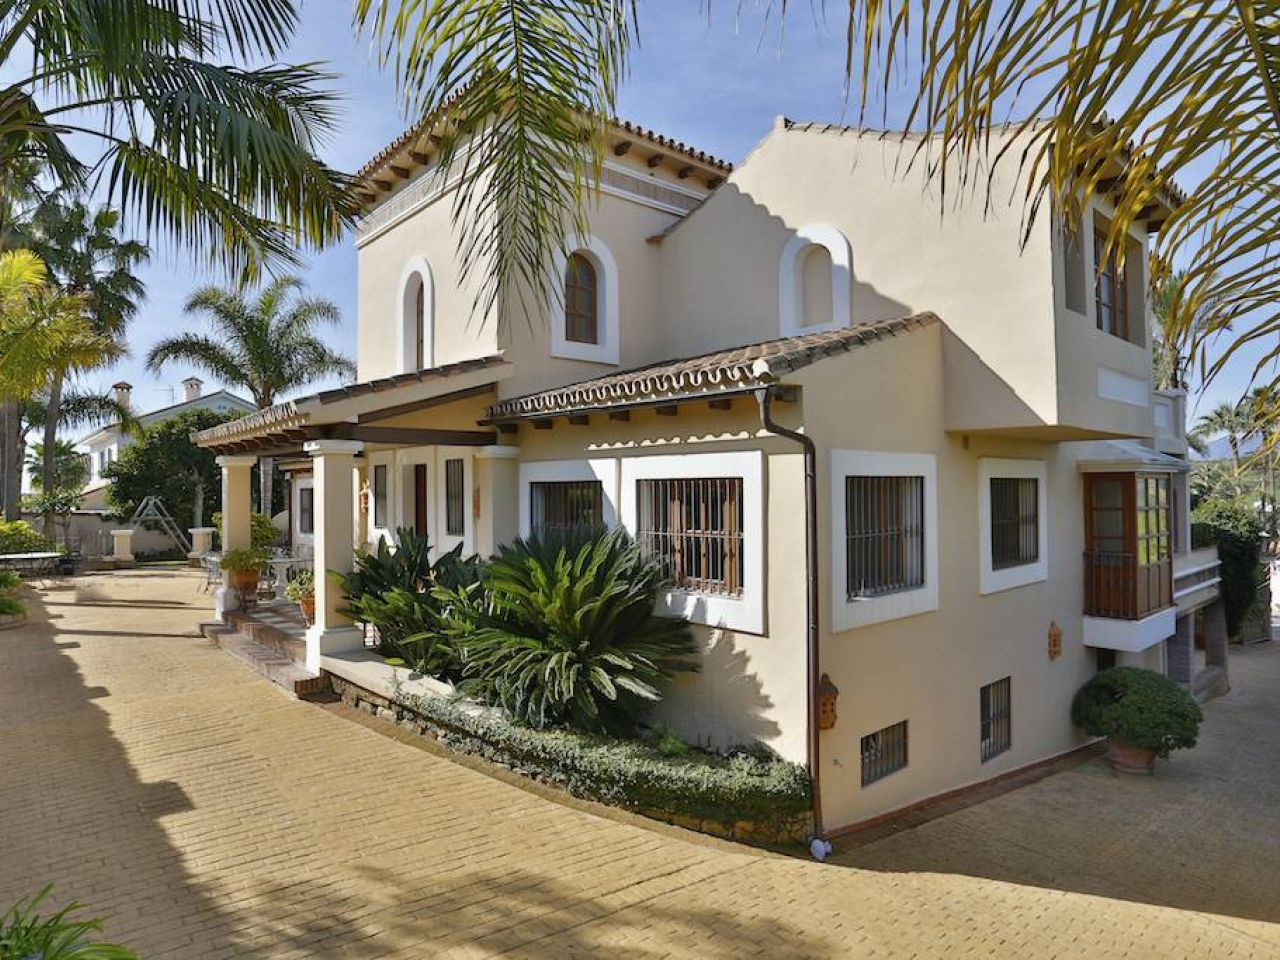 Single Family Home for Sale at Villa in Nueva Andalucía nueva andalucia Marbella, Costa Del Sol 29660 Spain